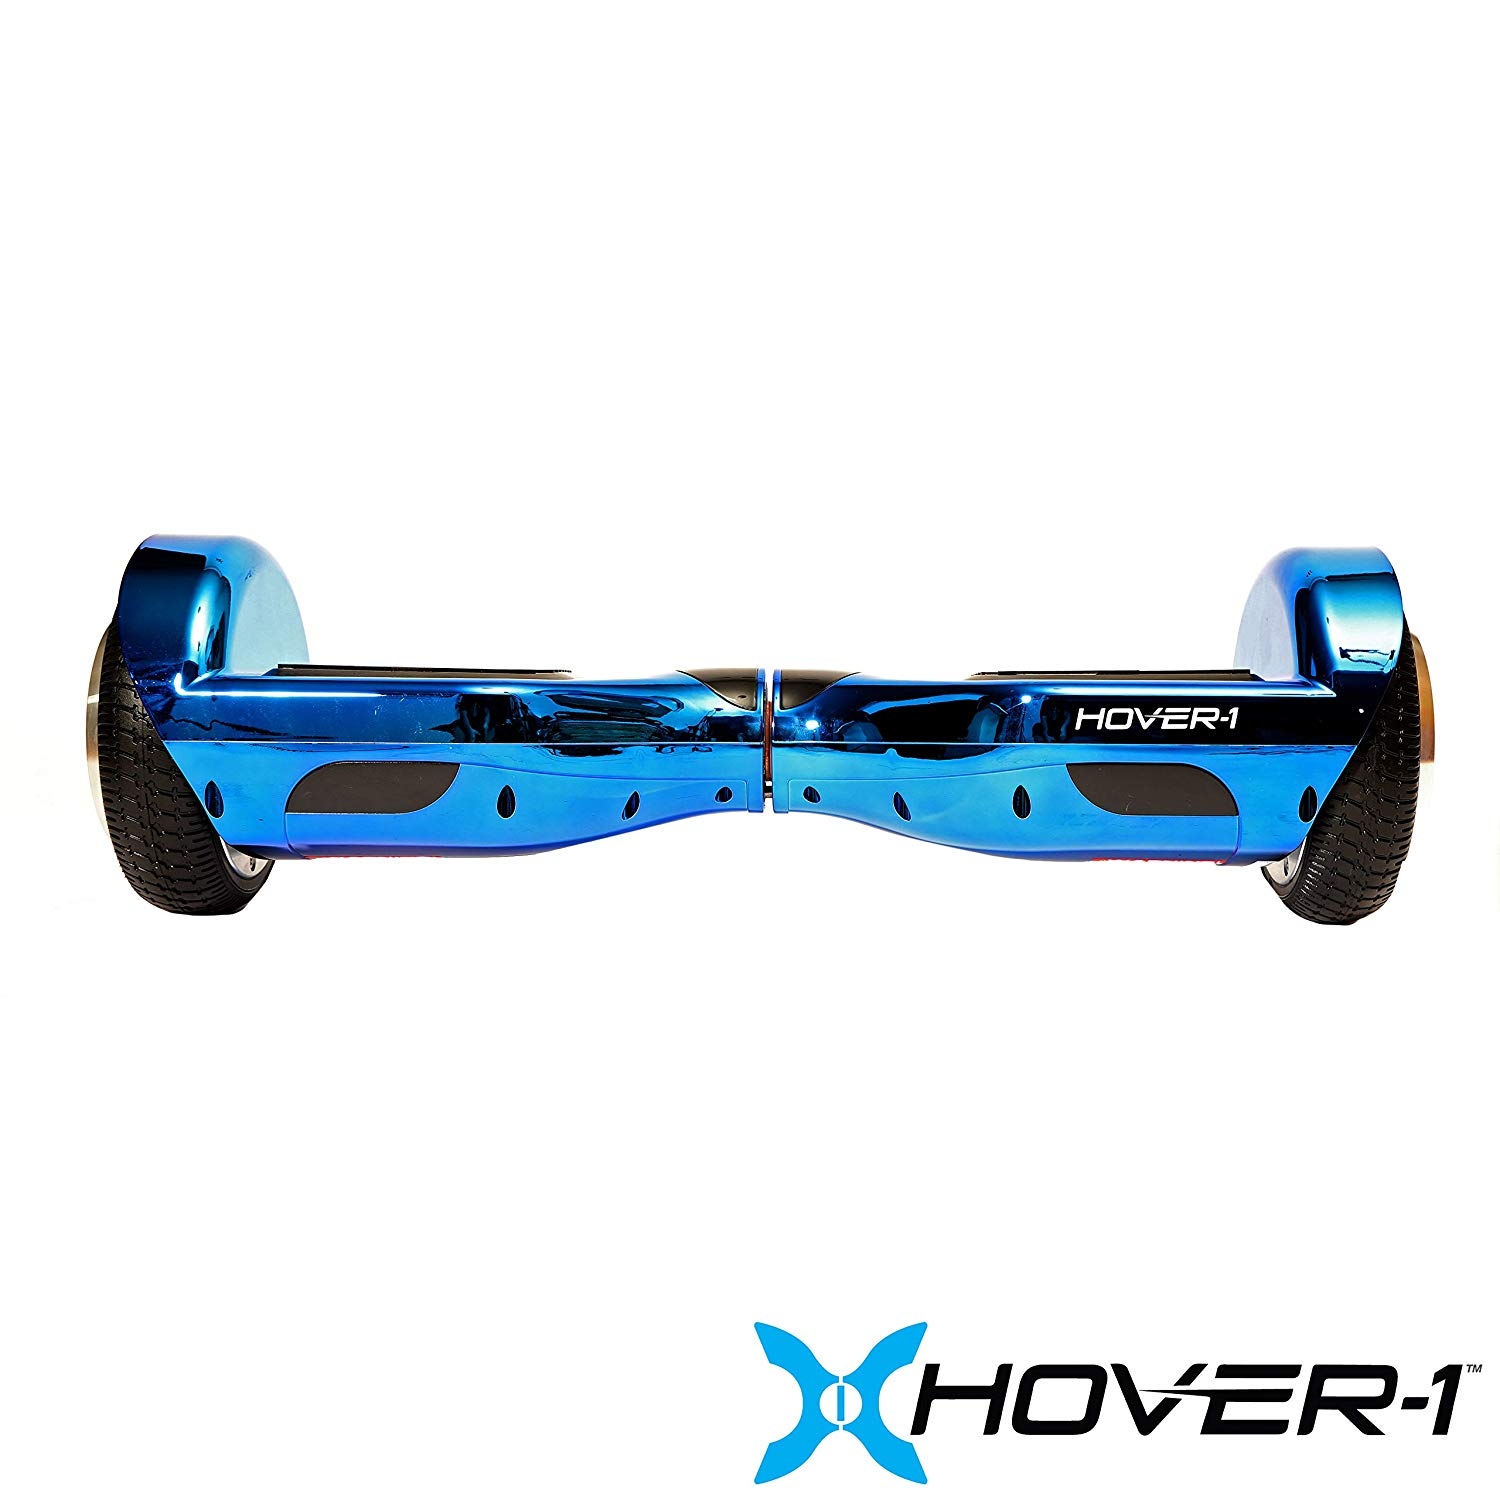 Hover-1 Ultra- UL 2272 Certified- Electric Self Balancing Hoverboard with LED Lights and 4 Hour Battery Life, Blue